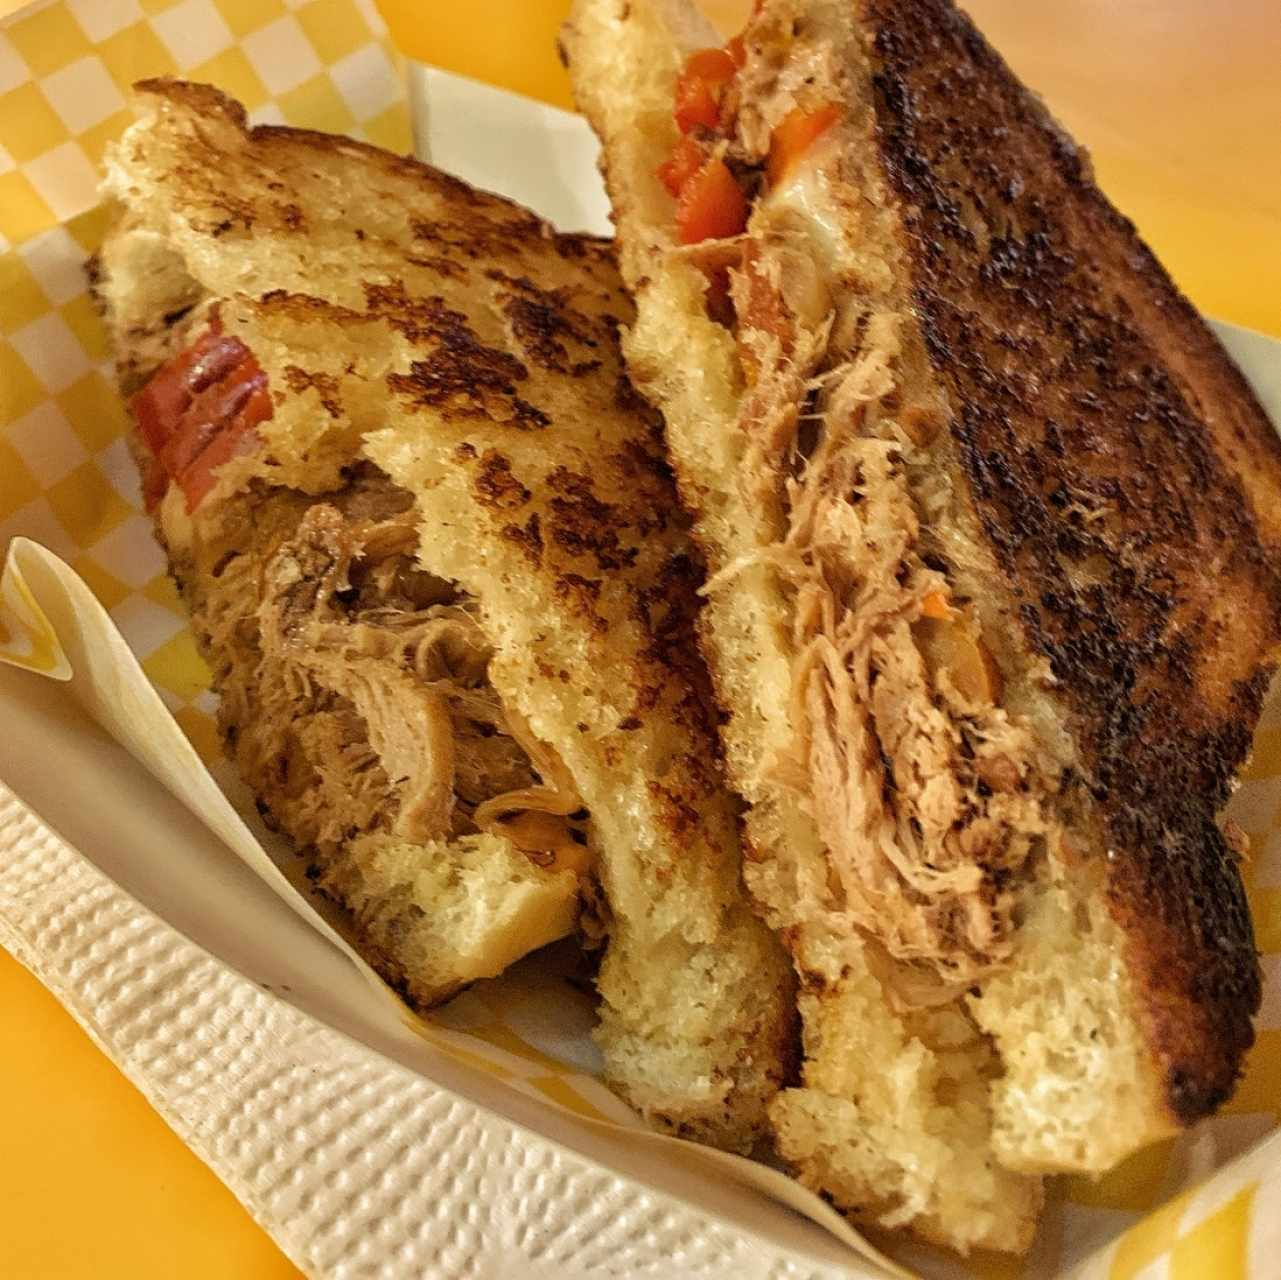 Grilled Cheese - Pulled Pork